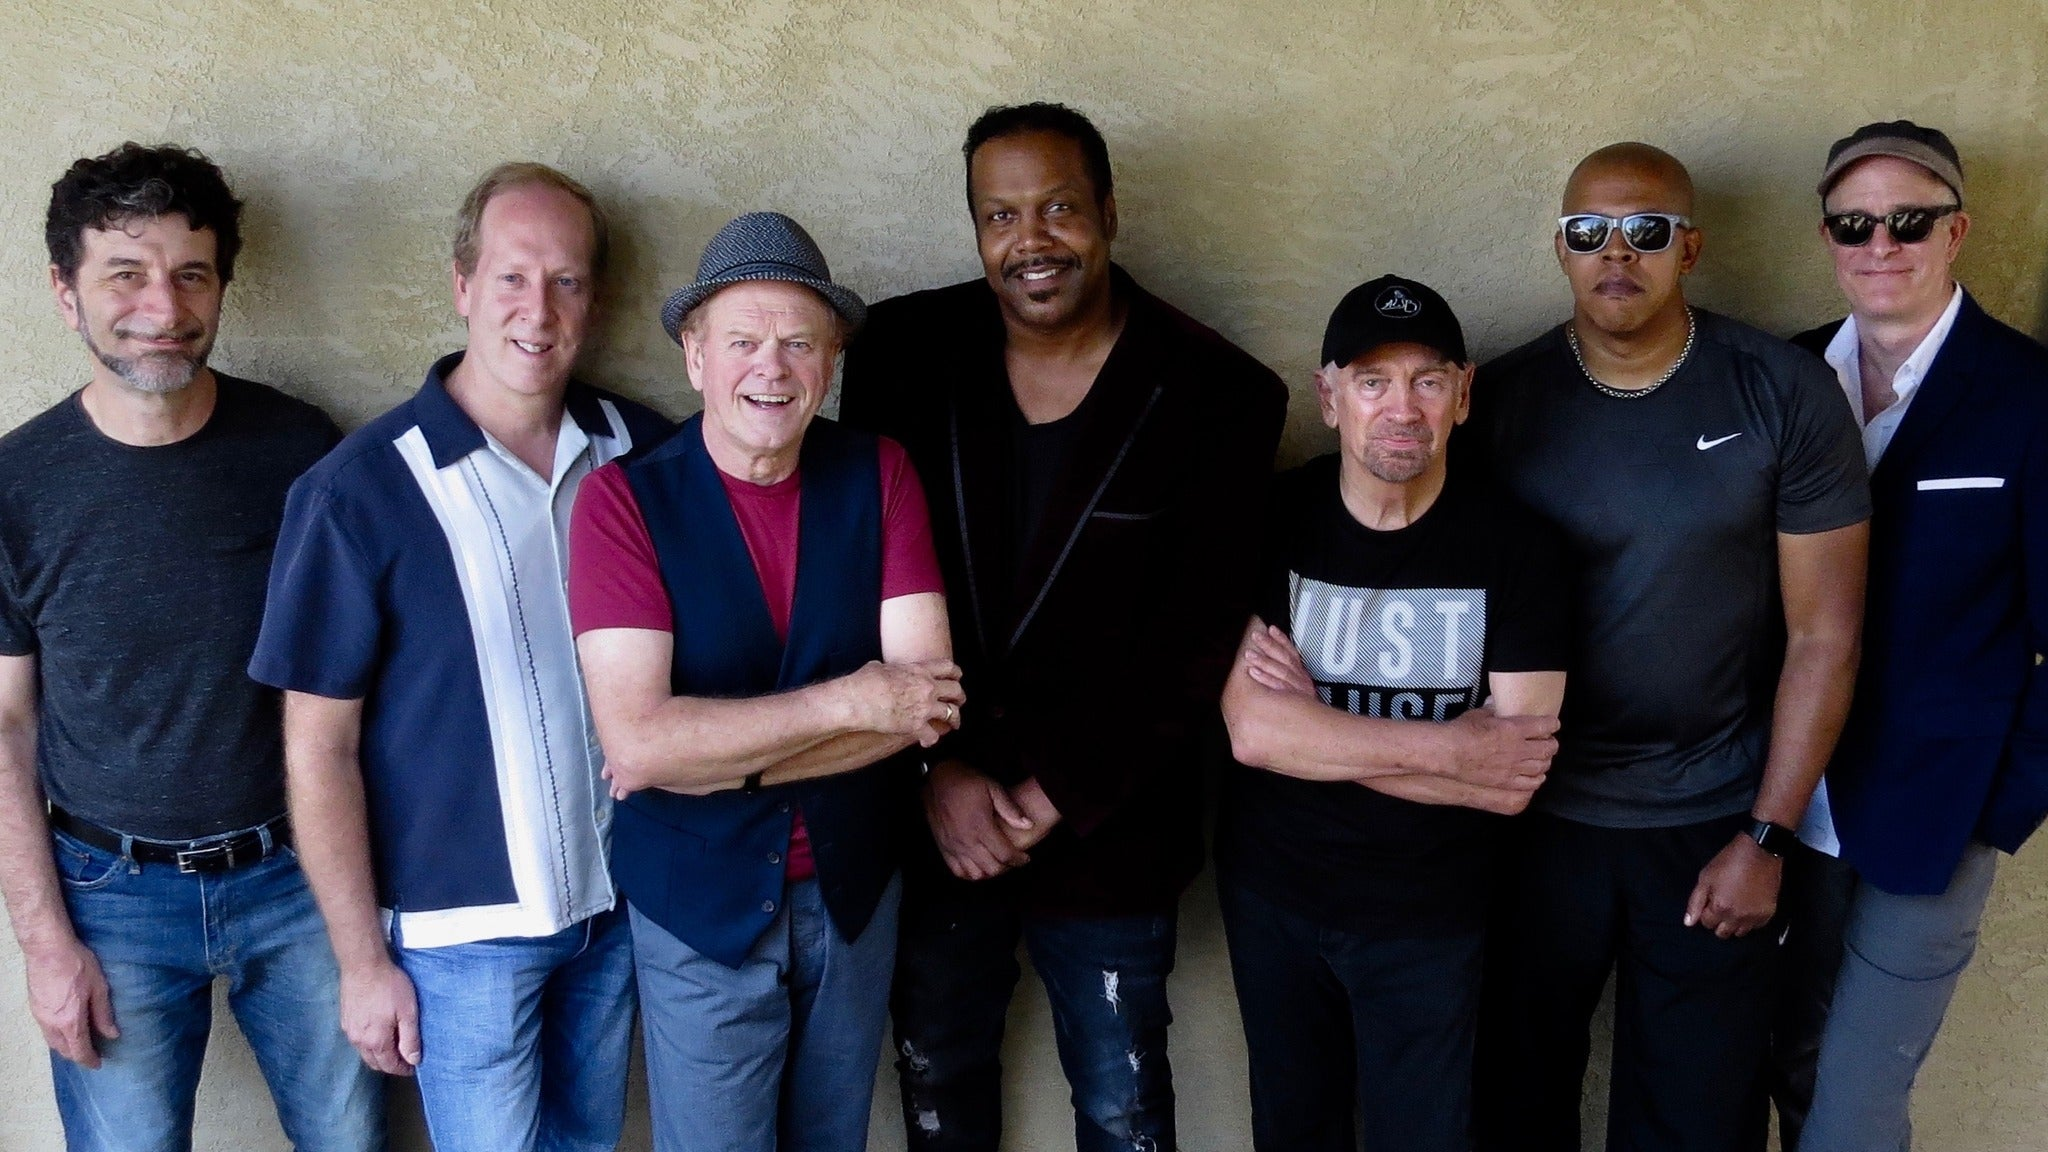 Average White Band at Discovery Ventura